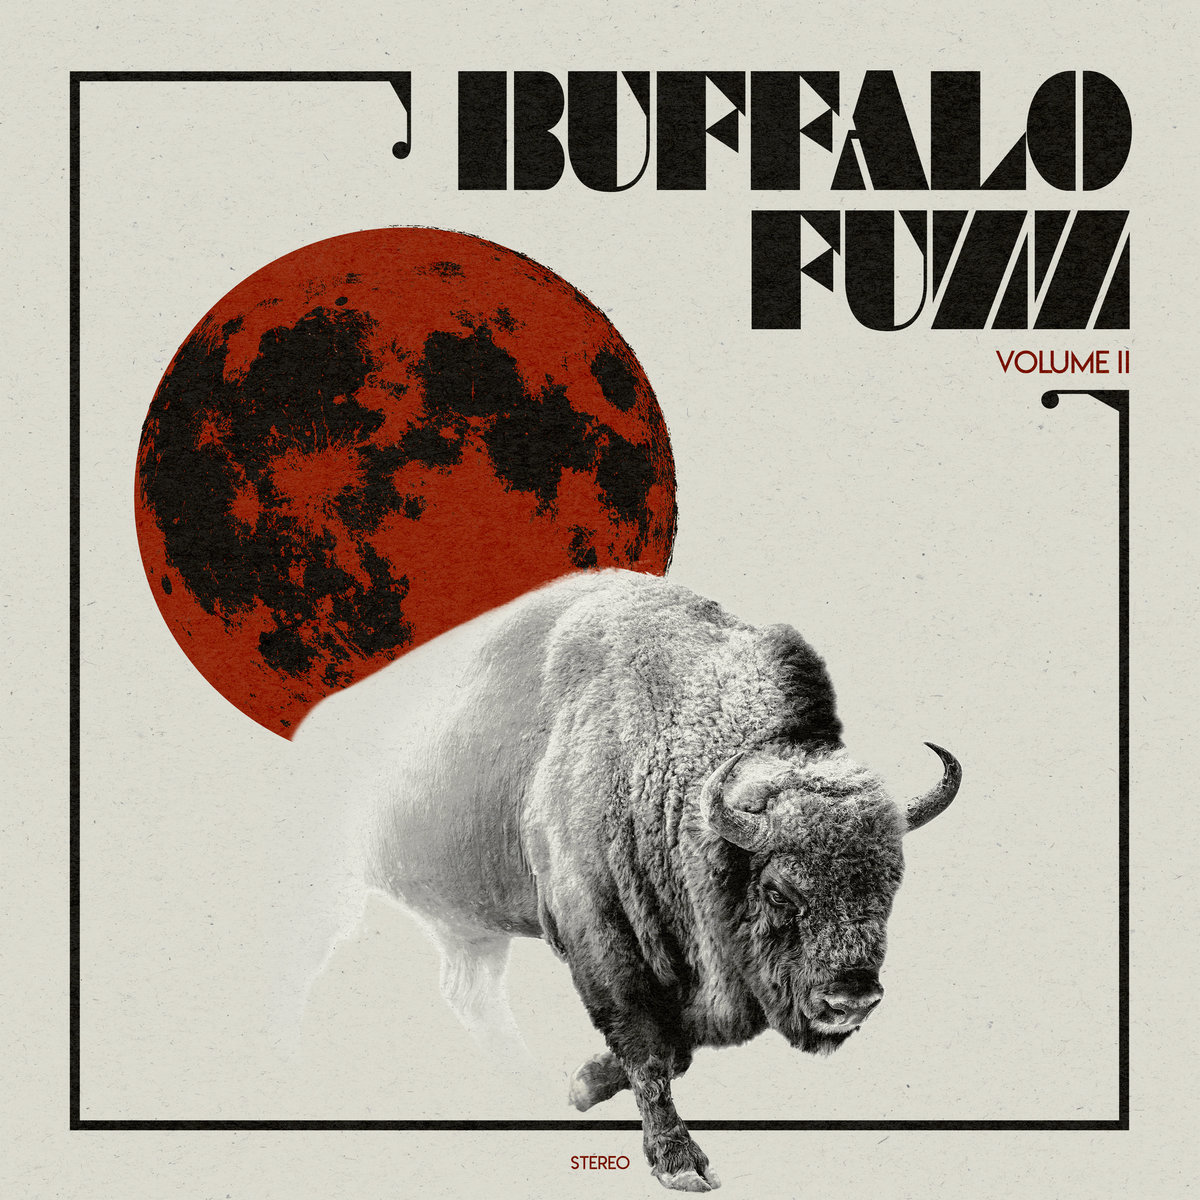 buffalo fuzz volume ii